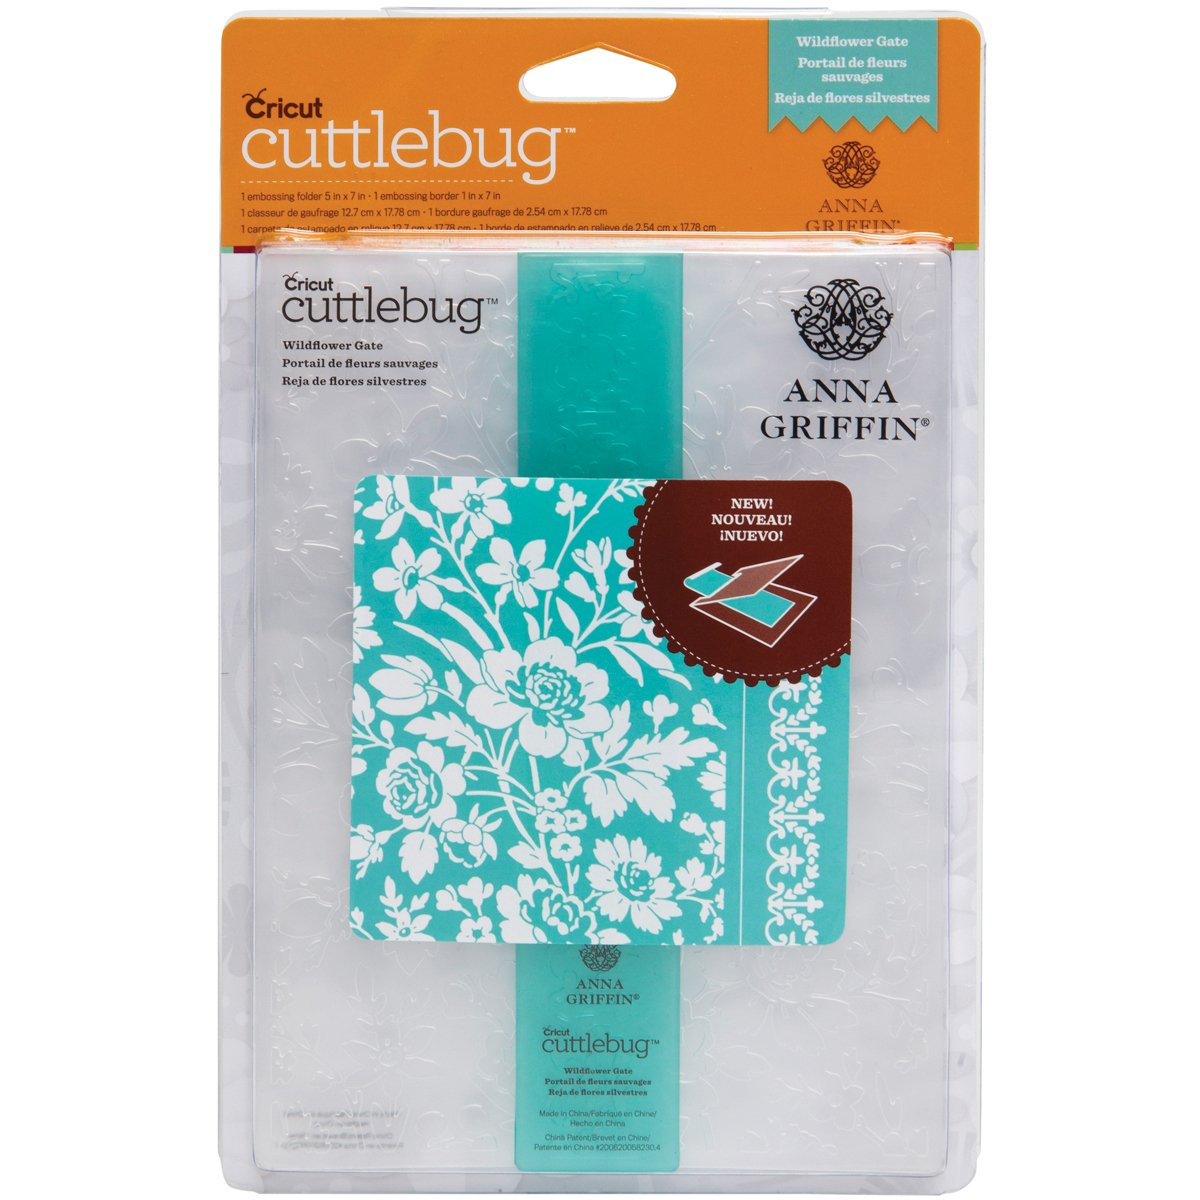 Cuttlebug Cricut 5 by 7-Inch Embossing Folder and 7-Inch Border, Wildflower Gate